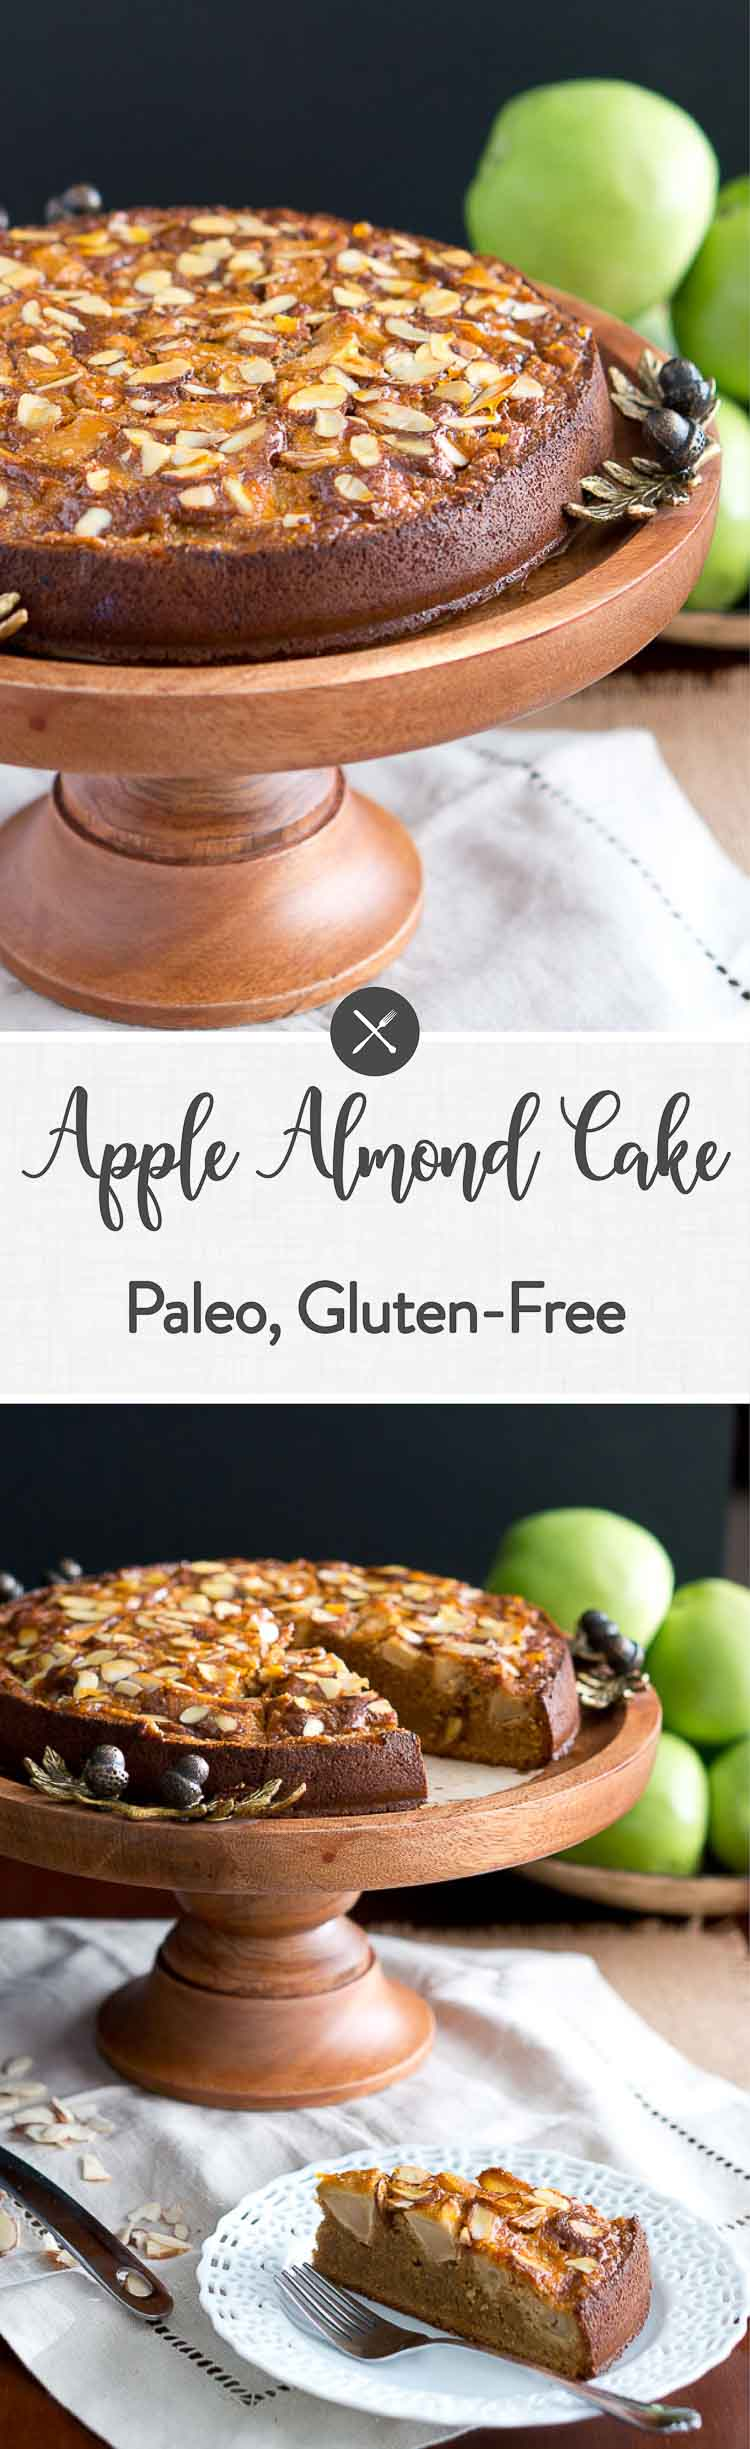 This apple almond cake is made with just a few simple ingredients and has a very delicate apple and almond flavor. It is paleo and gluten-free too! #applecake #almondcake #glutenfree #grainfree #paleo #healthy #dessert